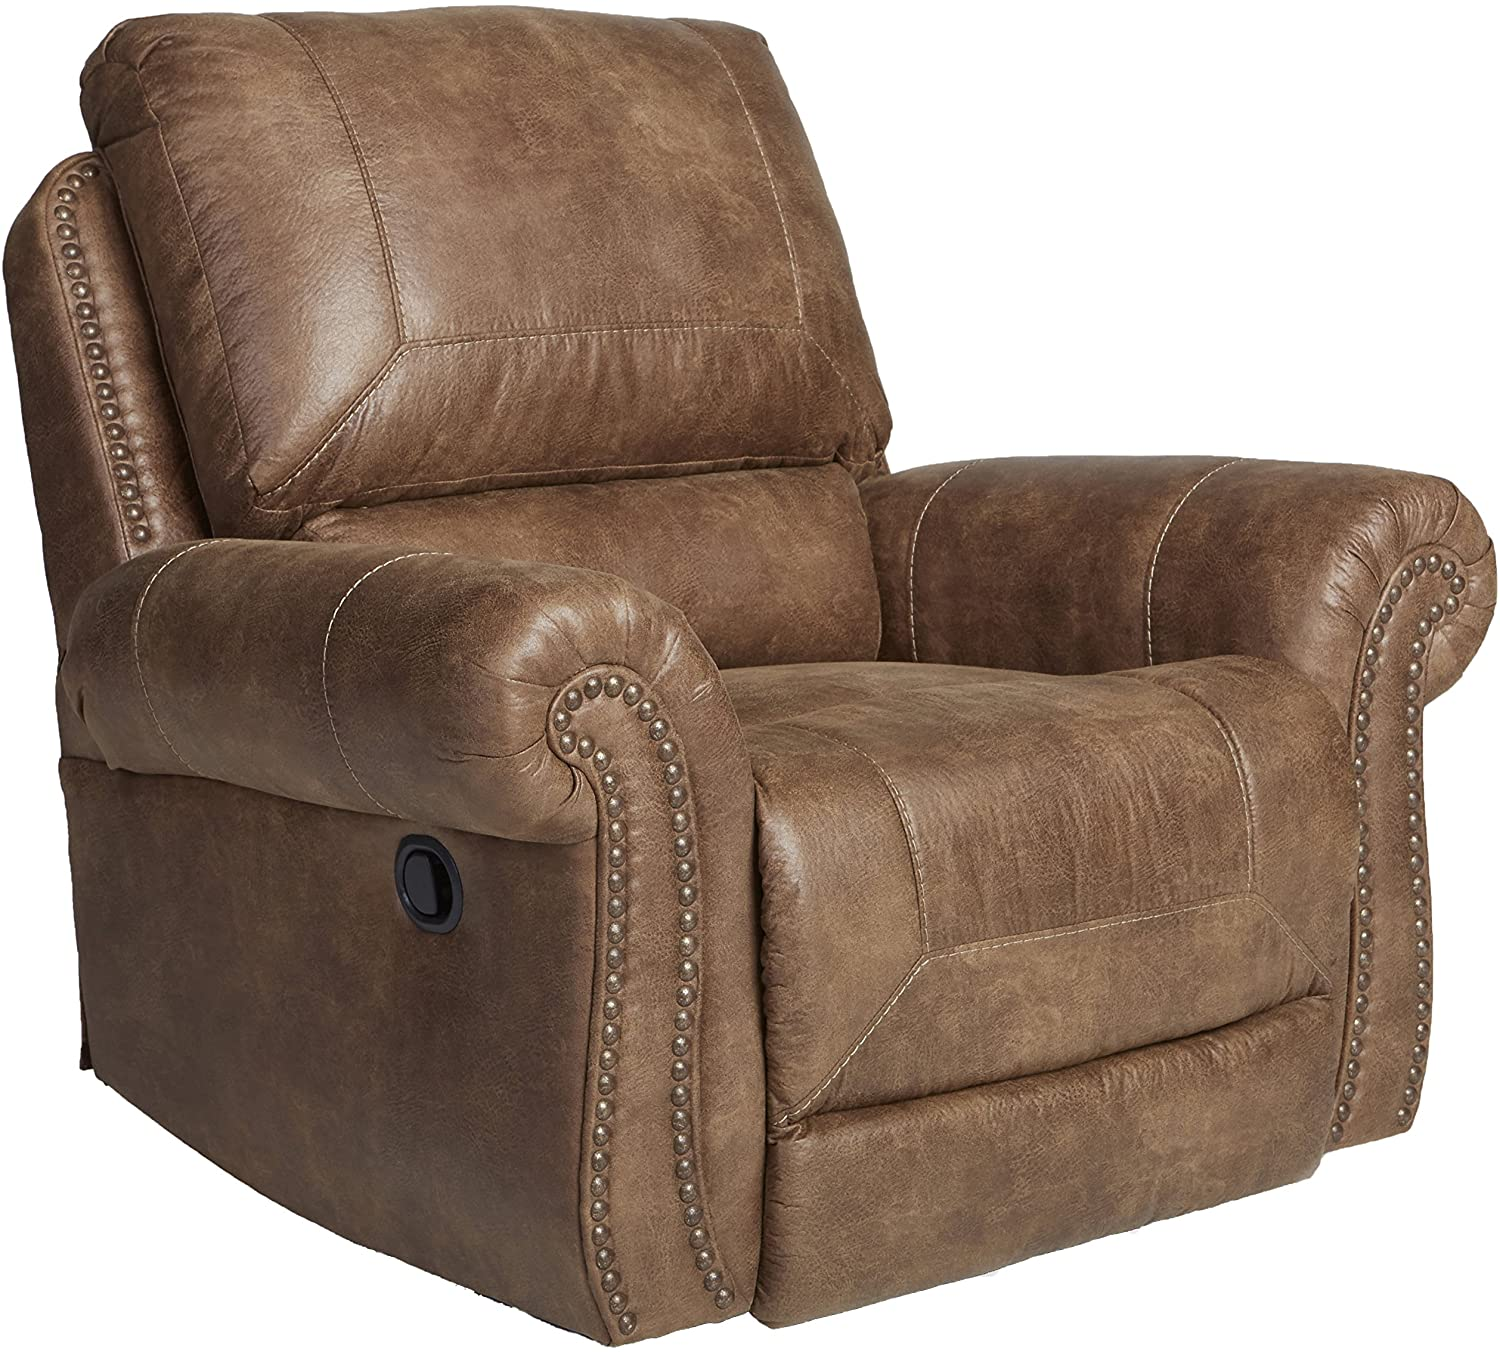 Ashley Furniture Oversized Fully - Recliners to Sleep